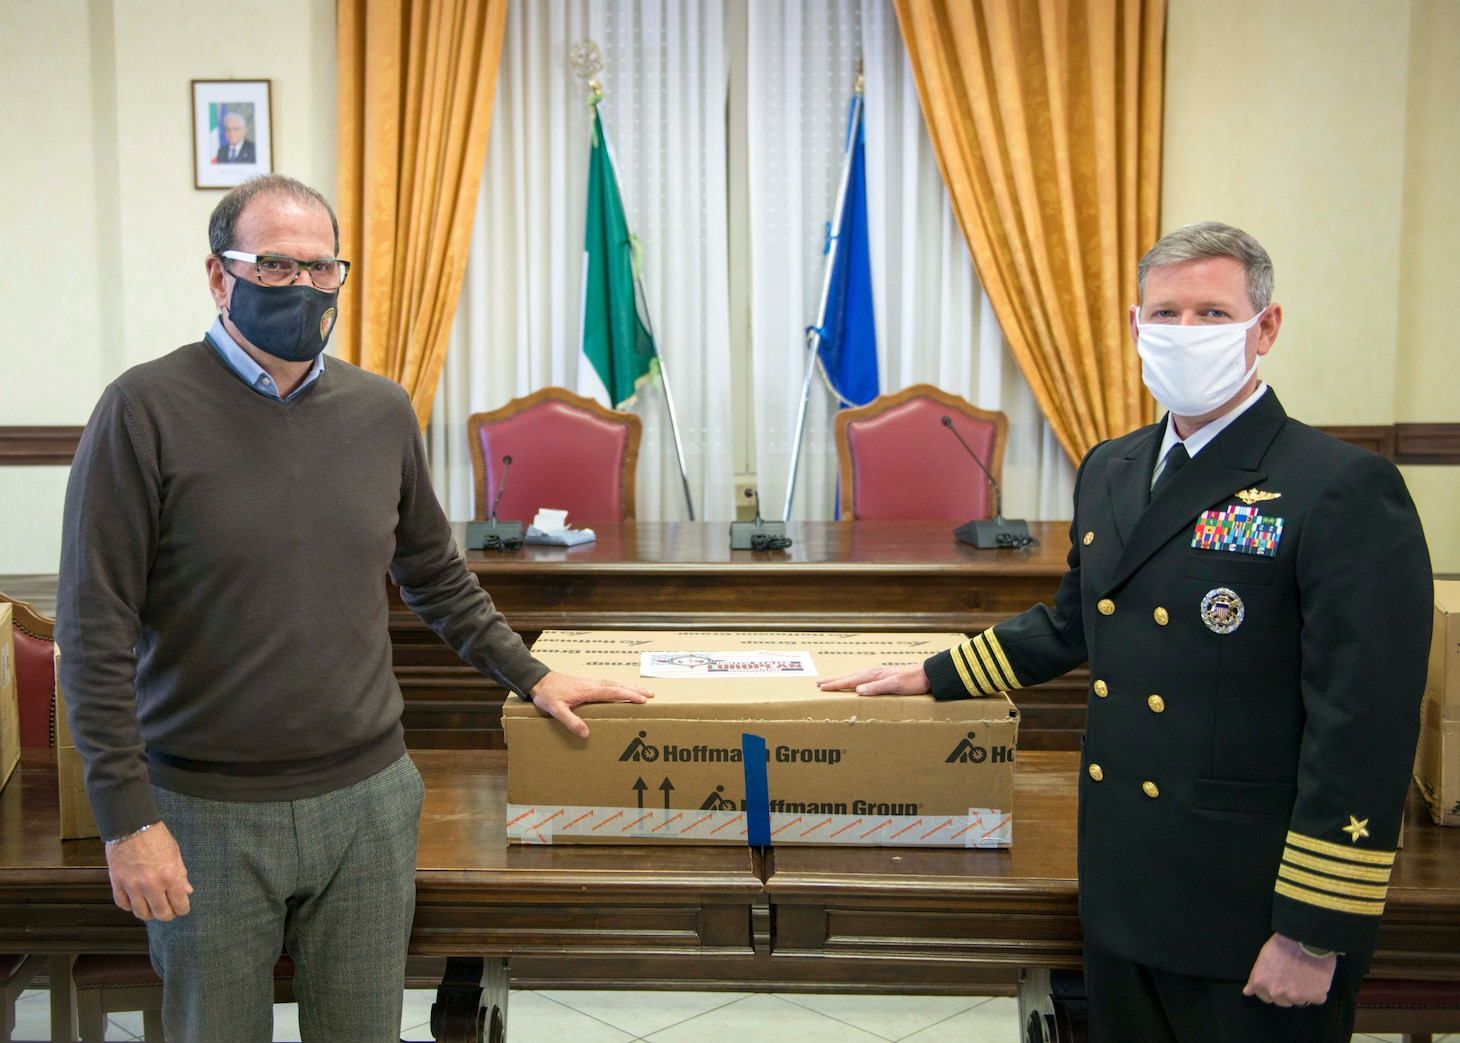 Capt. David Pollard, Commanding officer of the Blue Ridge-class command and control ship USS Mount Whitney, and Cosmo Mitrano, mayor of Gaeta, Italy, pose for a photo during a medical supplies donation to Gaeta, Italy on behalf of the USS Mount Whitney (LCC 20) in Gaeta, March 26, 2021.